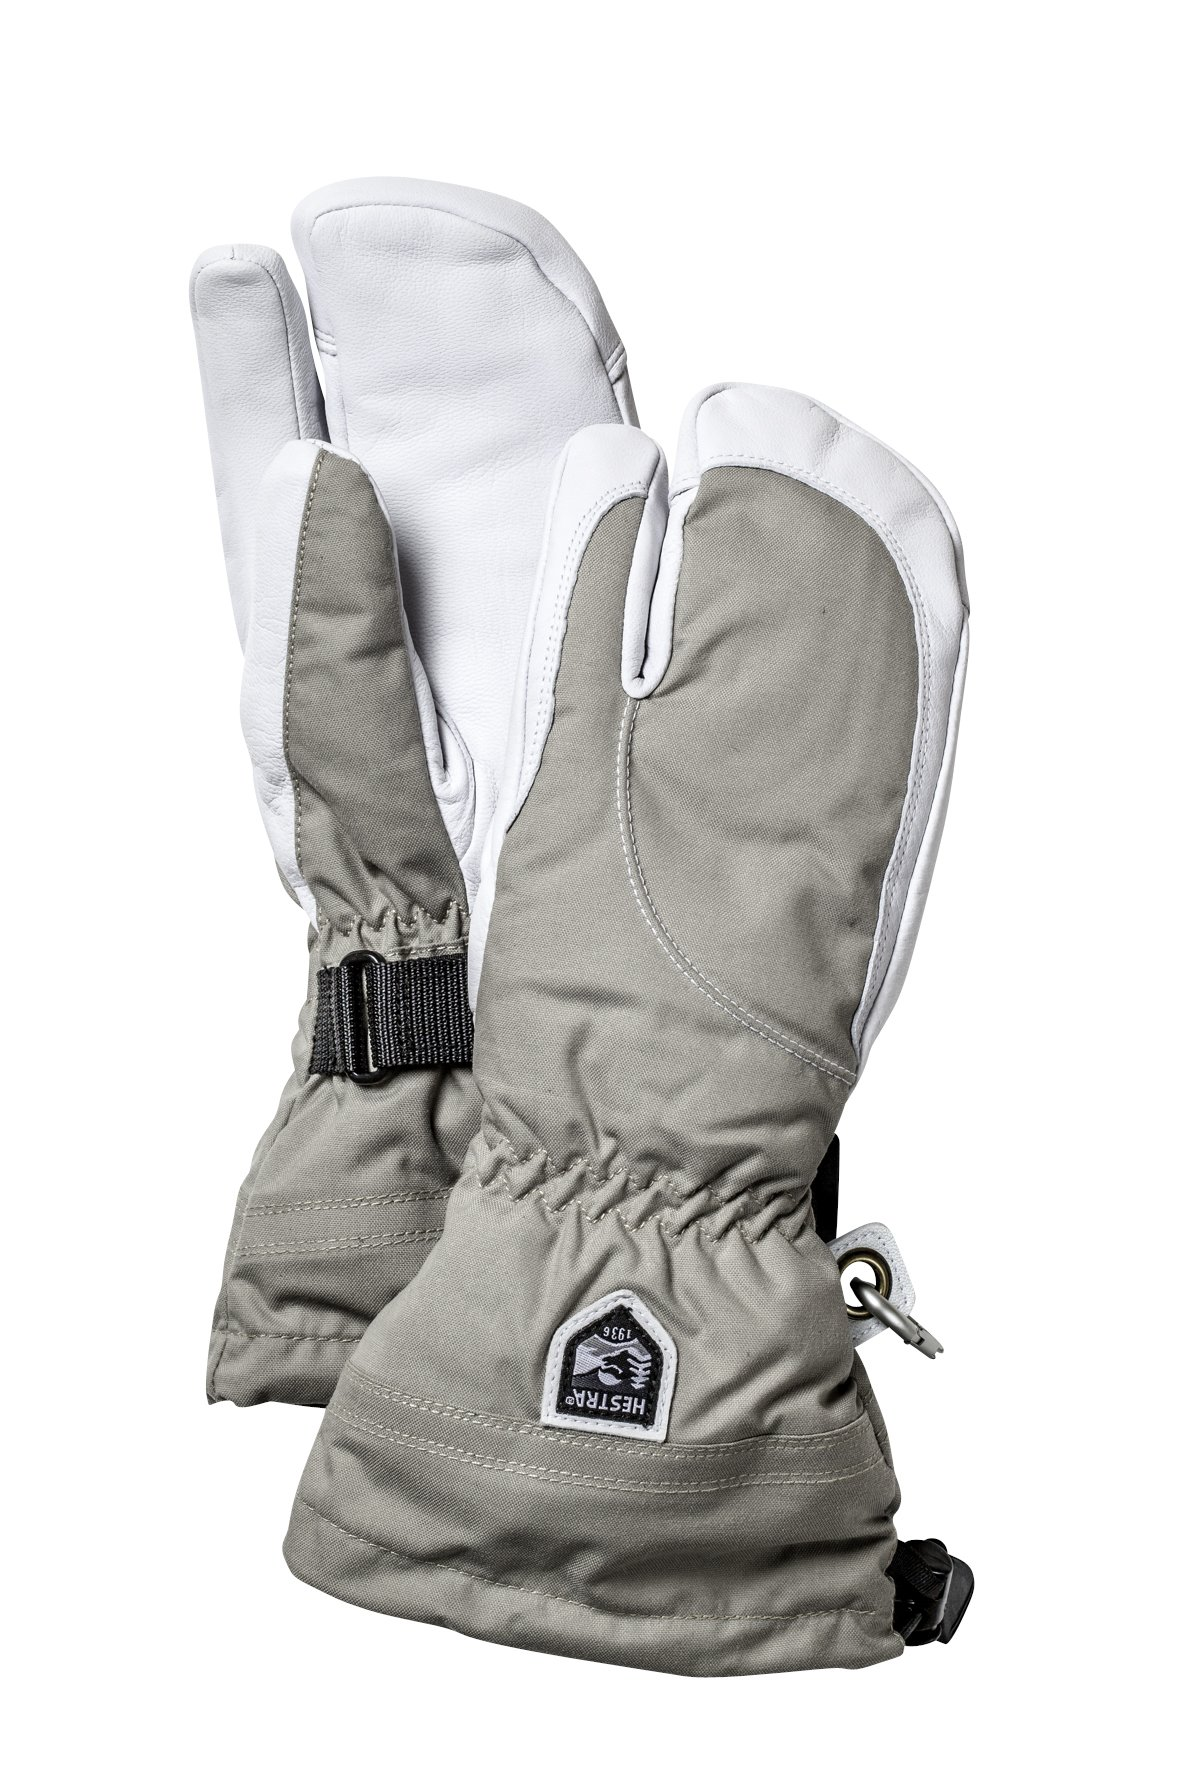 Hestra Women's Heli 3-Finger Gloves, Khaki/Off White, 7 by Hestra (Image #3)